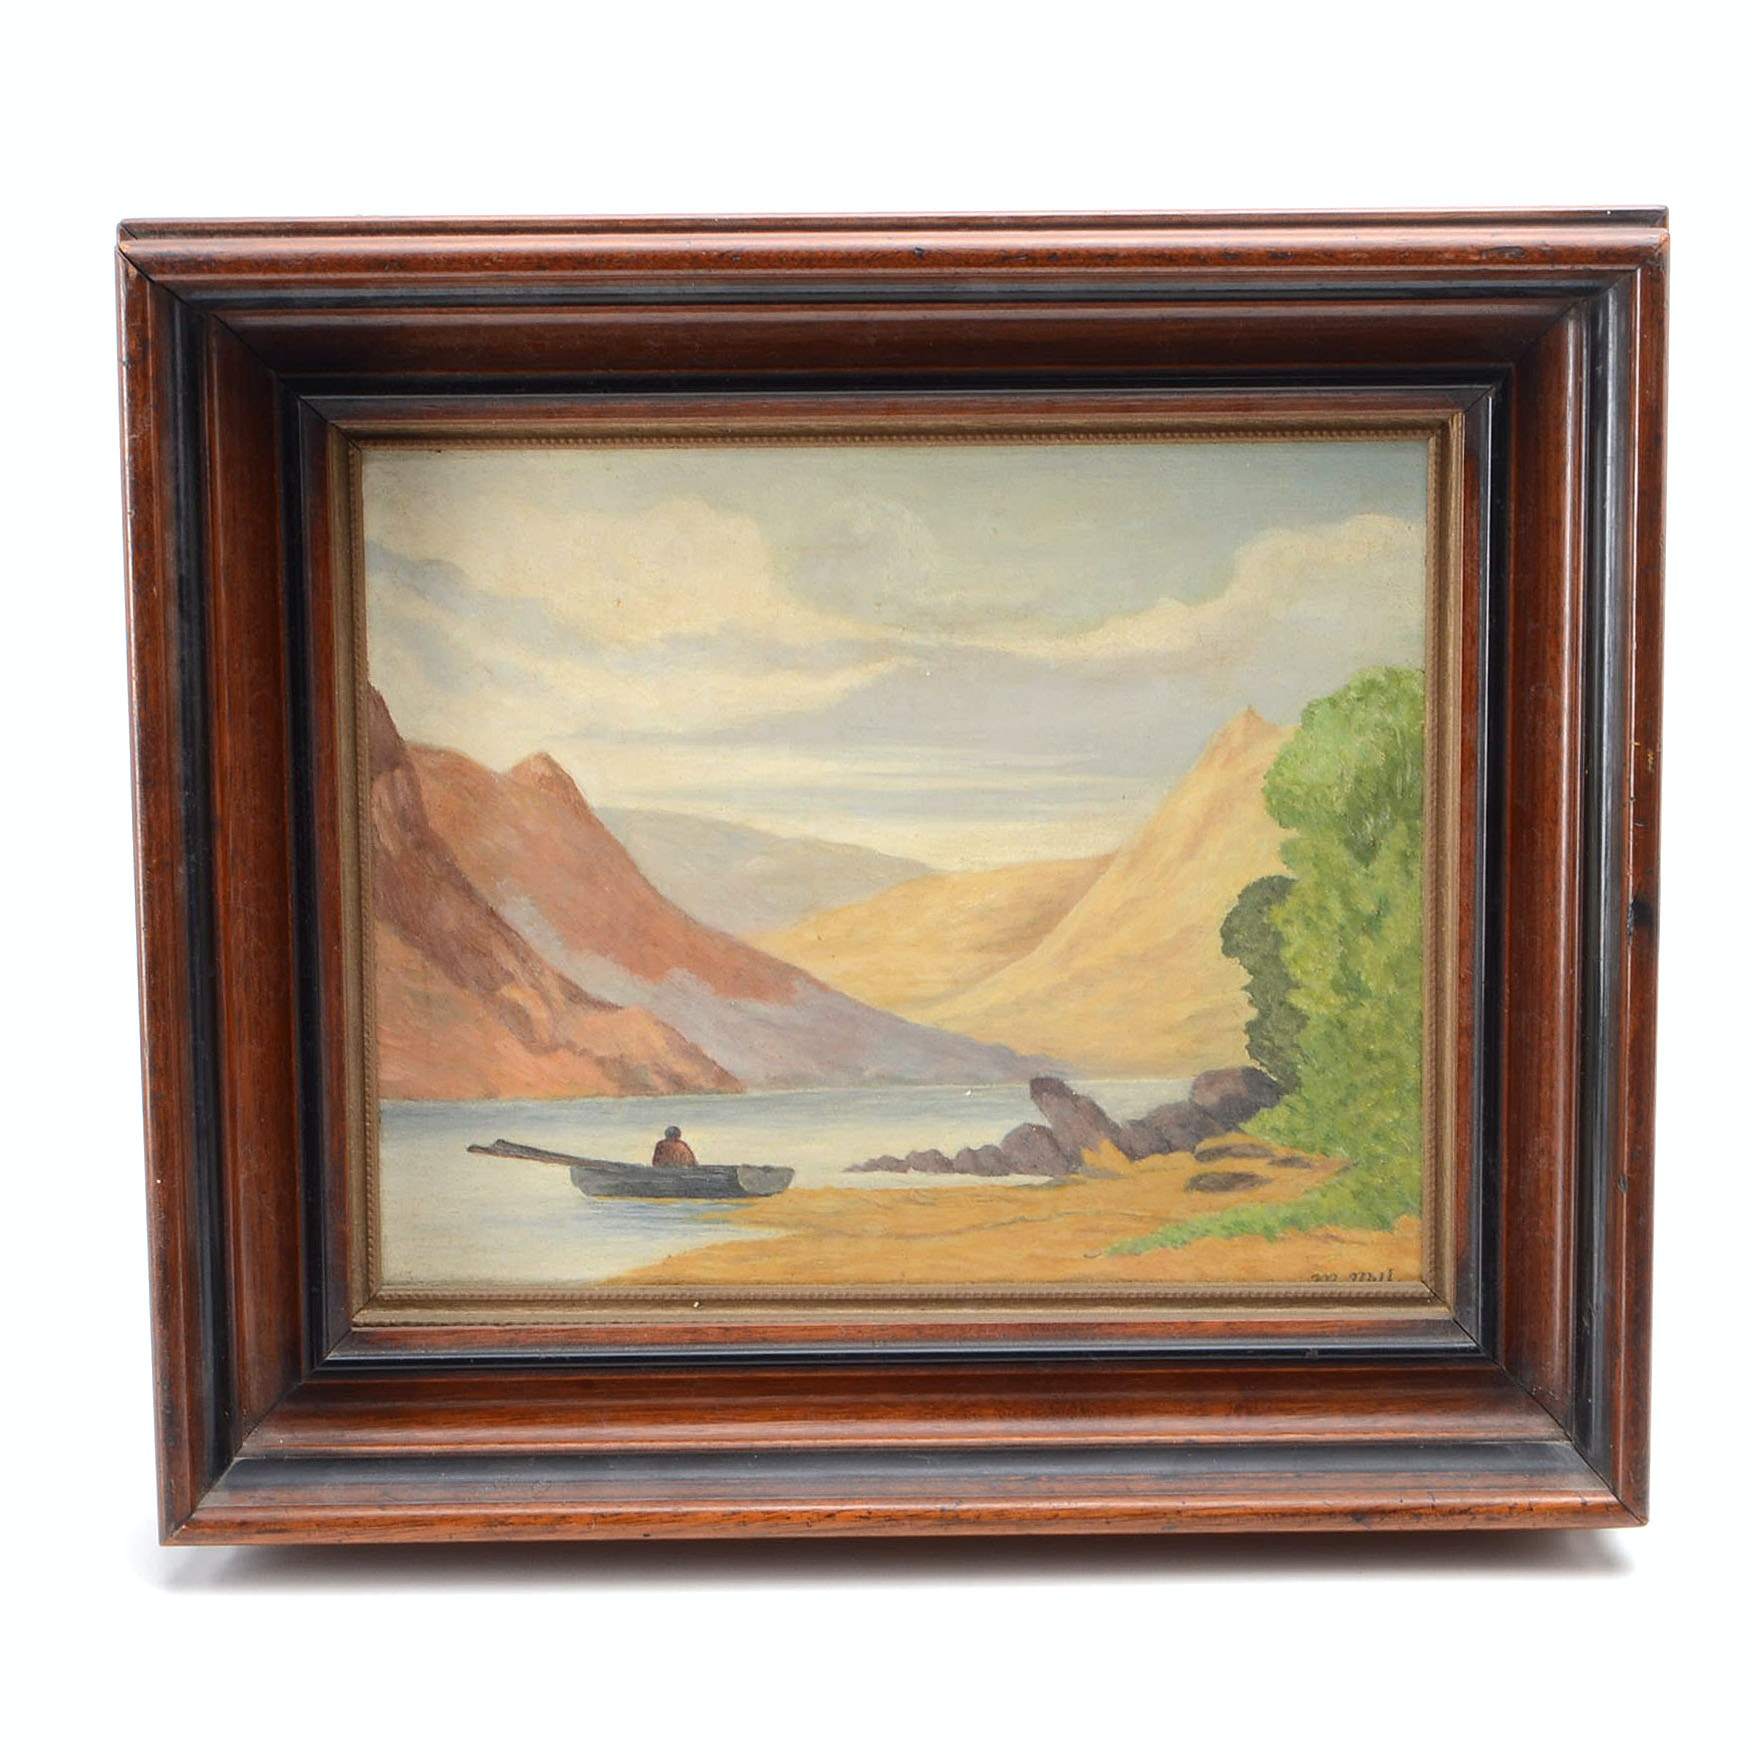 Signed Oil Painting on Board of a Mountain Lake